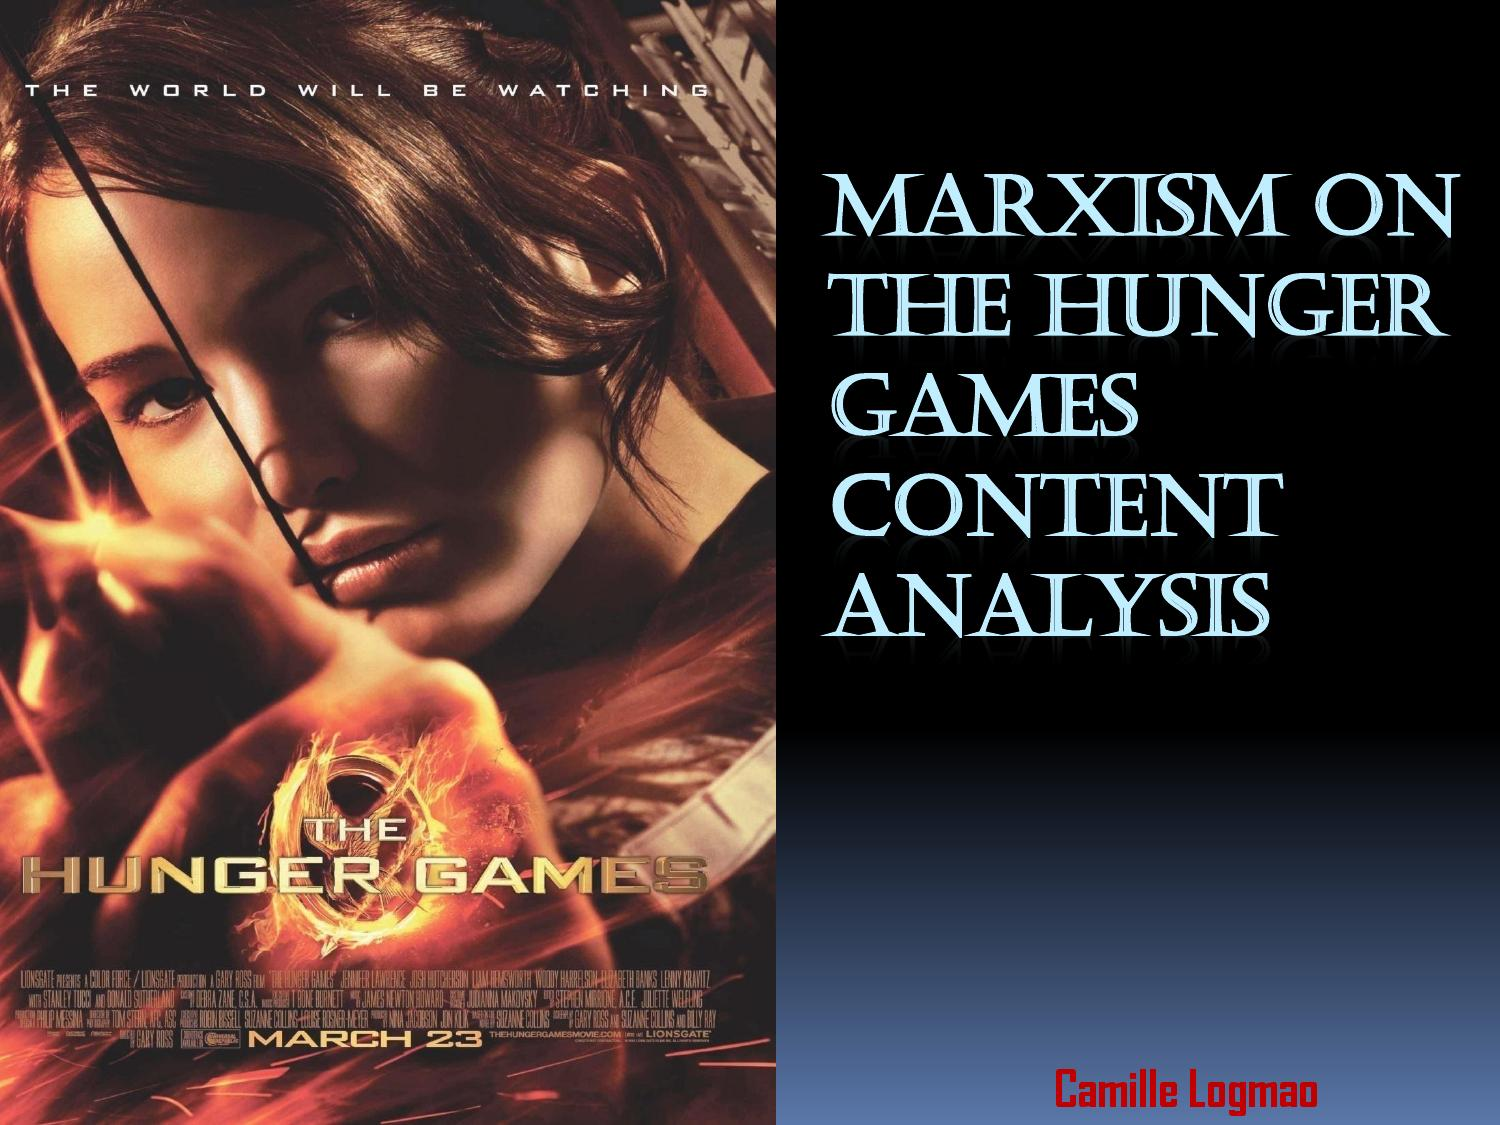 "feminist marxist analysis of the hunger games Linköping university  an analysis of the trilogy, the hunger games, by suzanne collins  53 women""s work: marxist feminism theory."